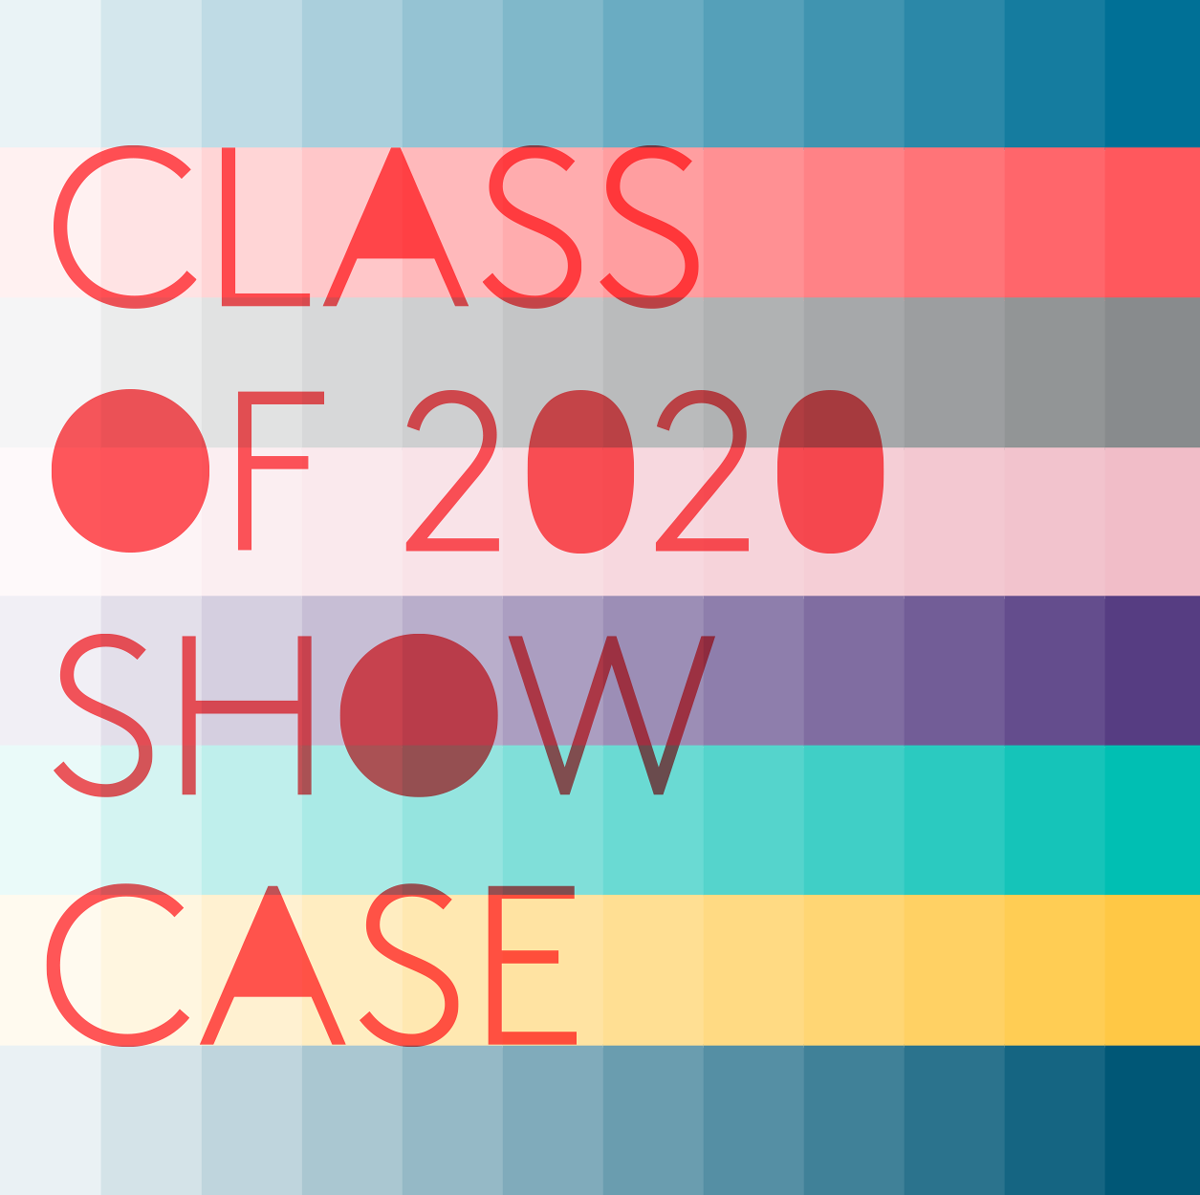 Class of 2020 Showcase_0520_NS.png